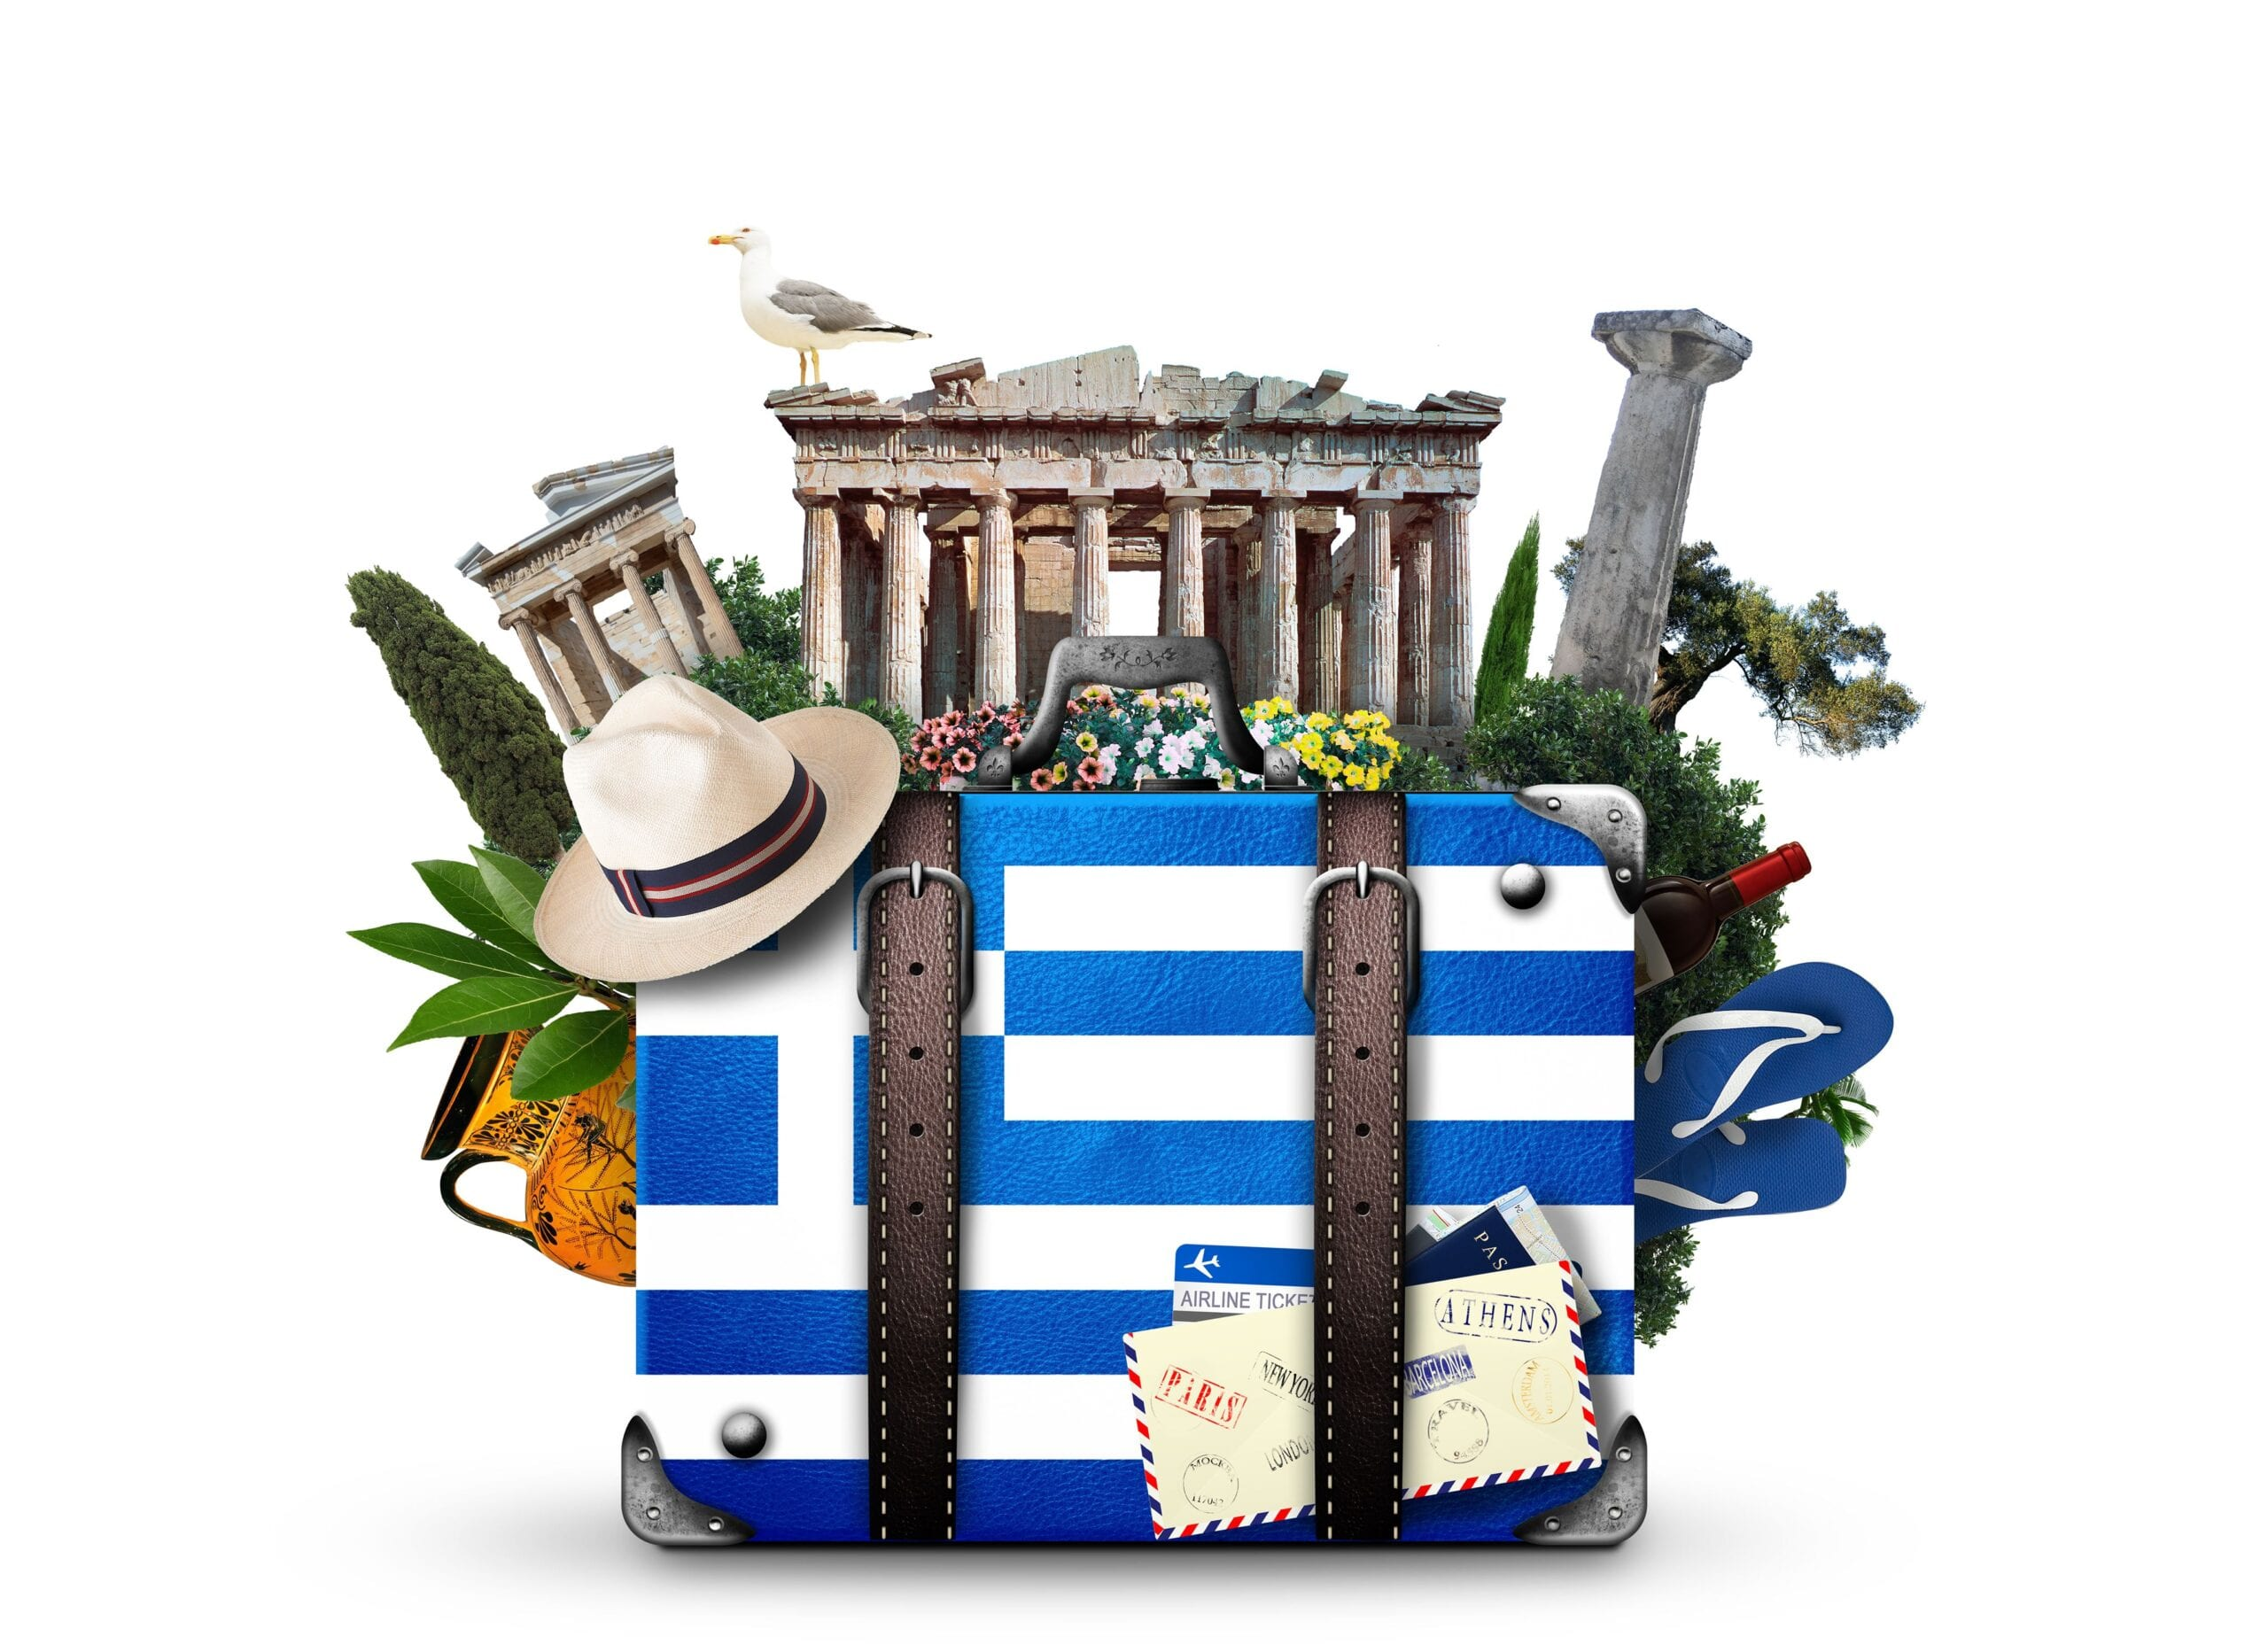 Image of a suitcase with Greece flag and Greece landmarks in the background